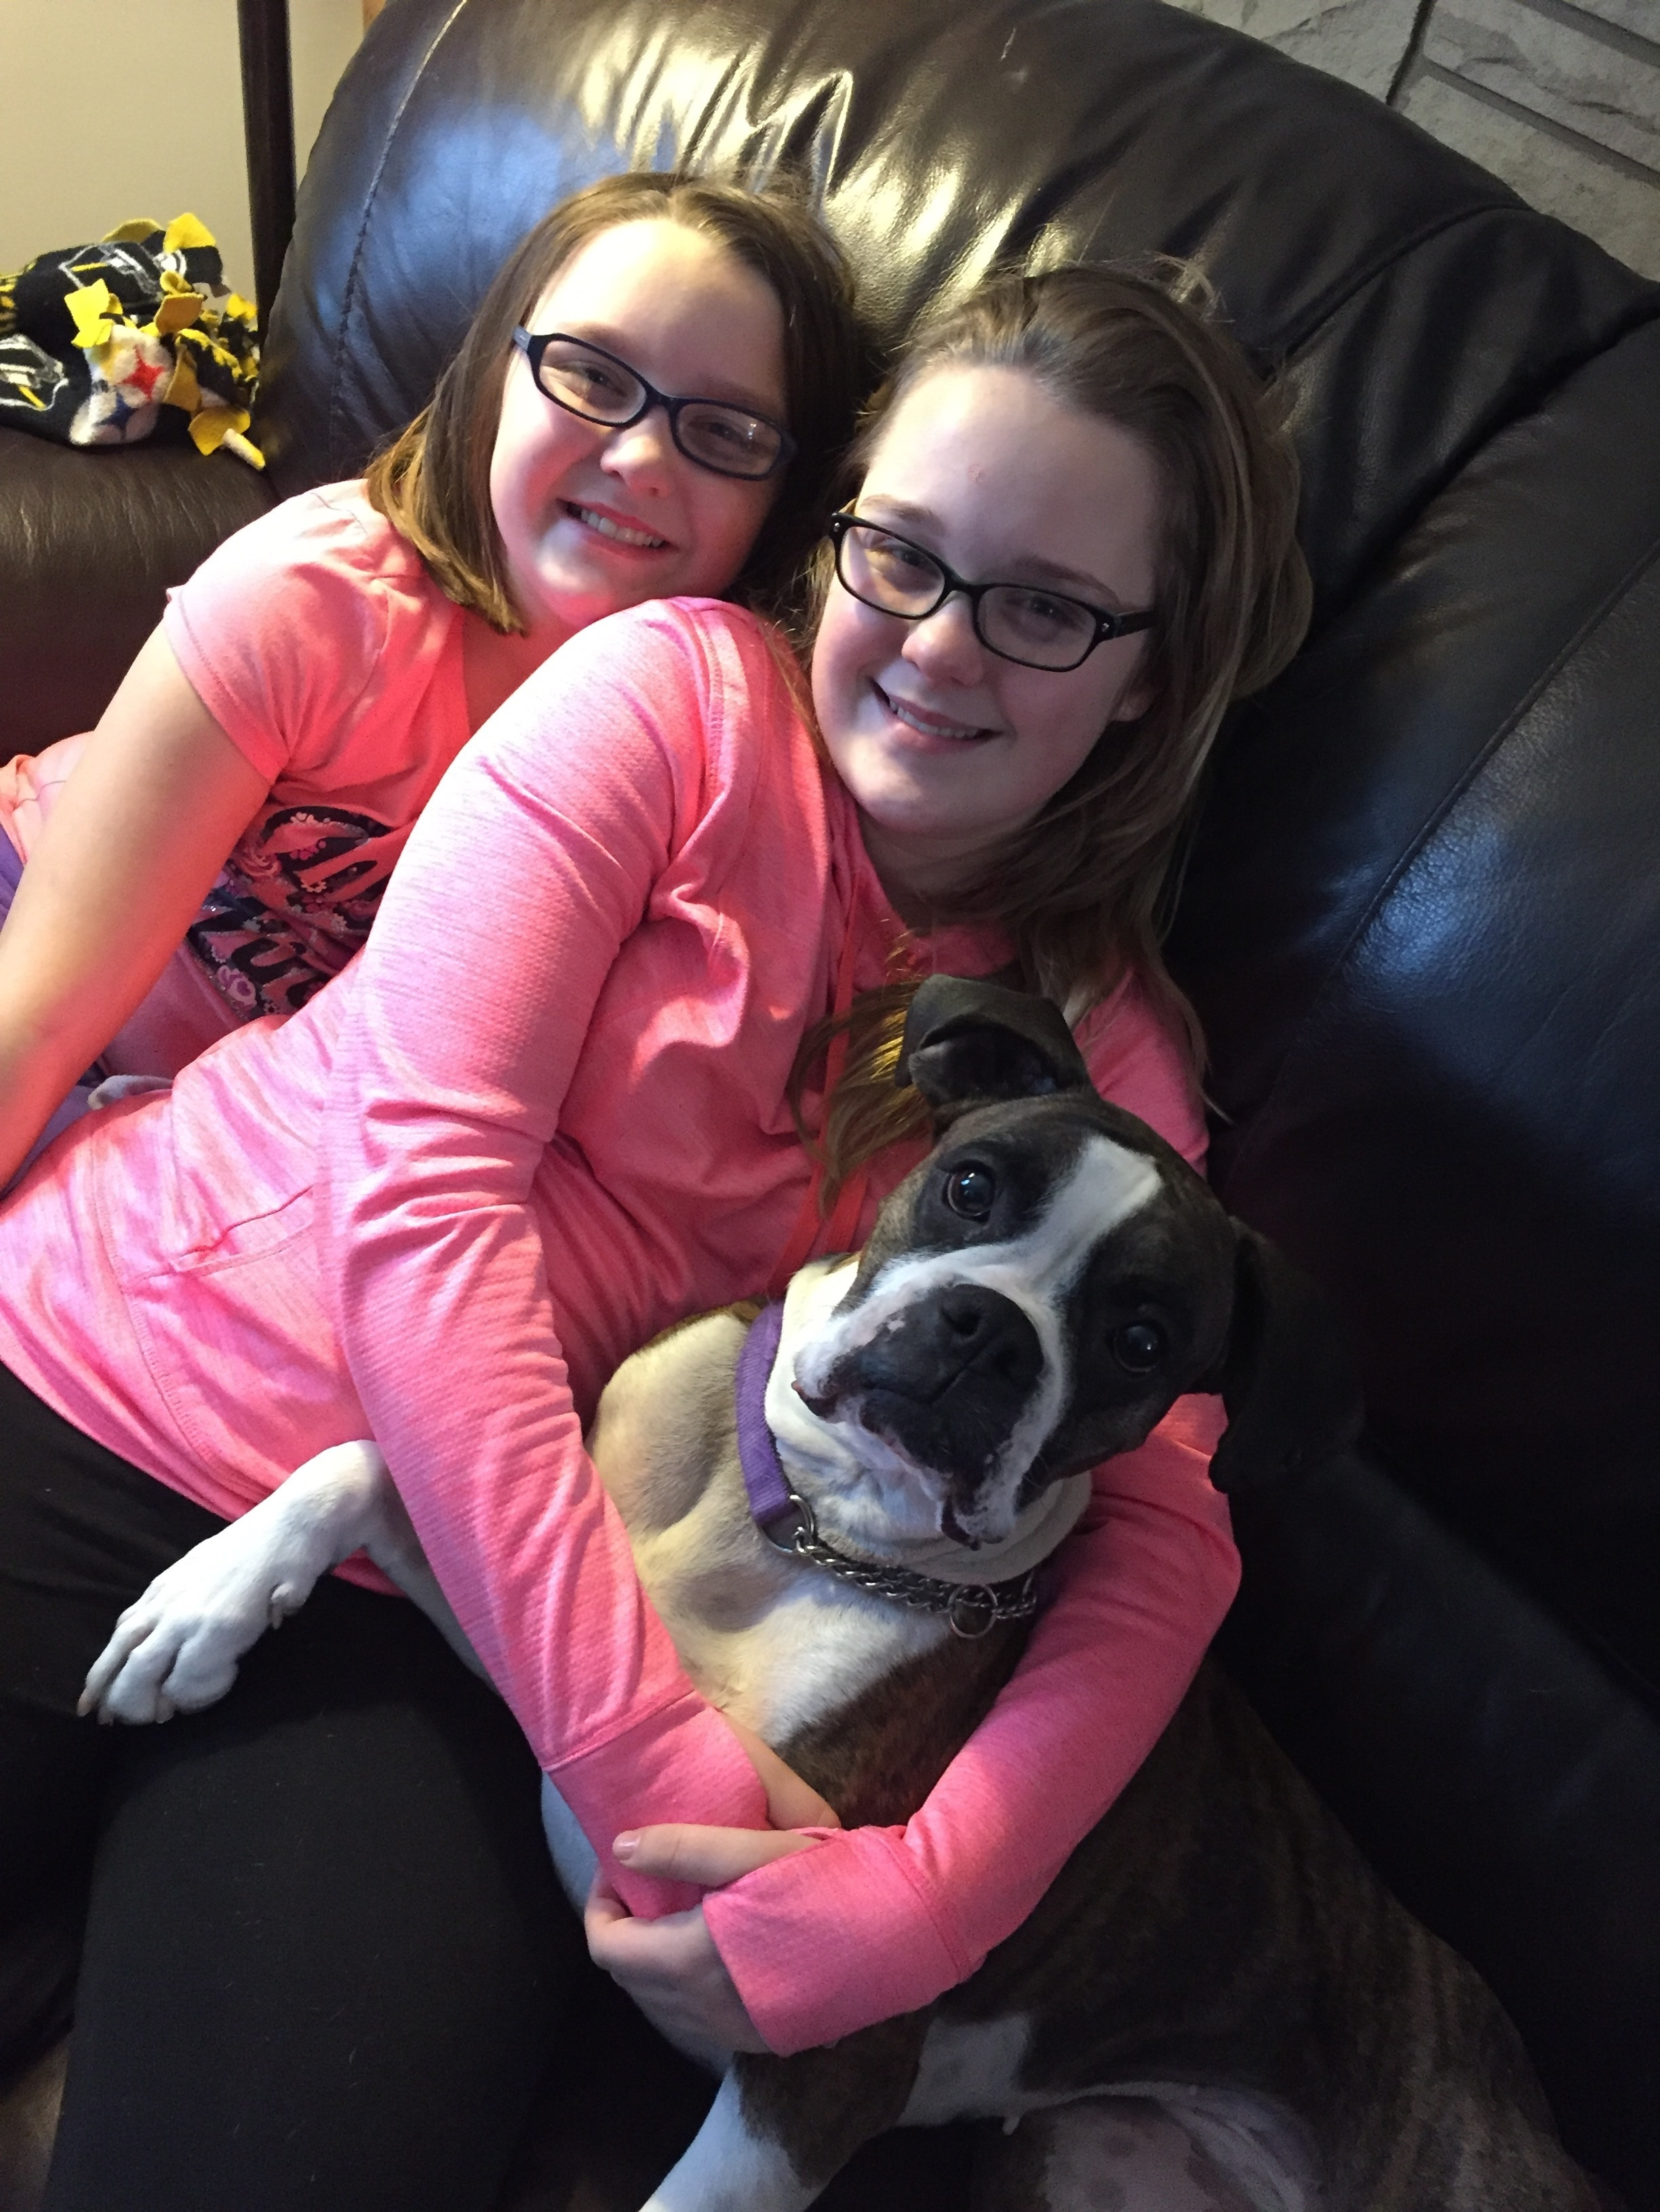 Two girls in pink on a couch sit hugging a black and white boxer.